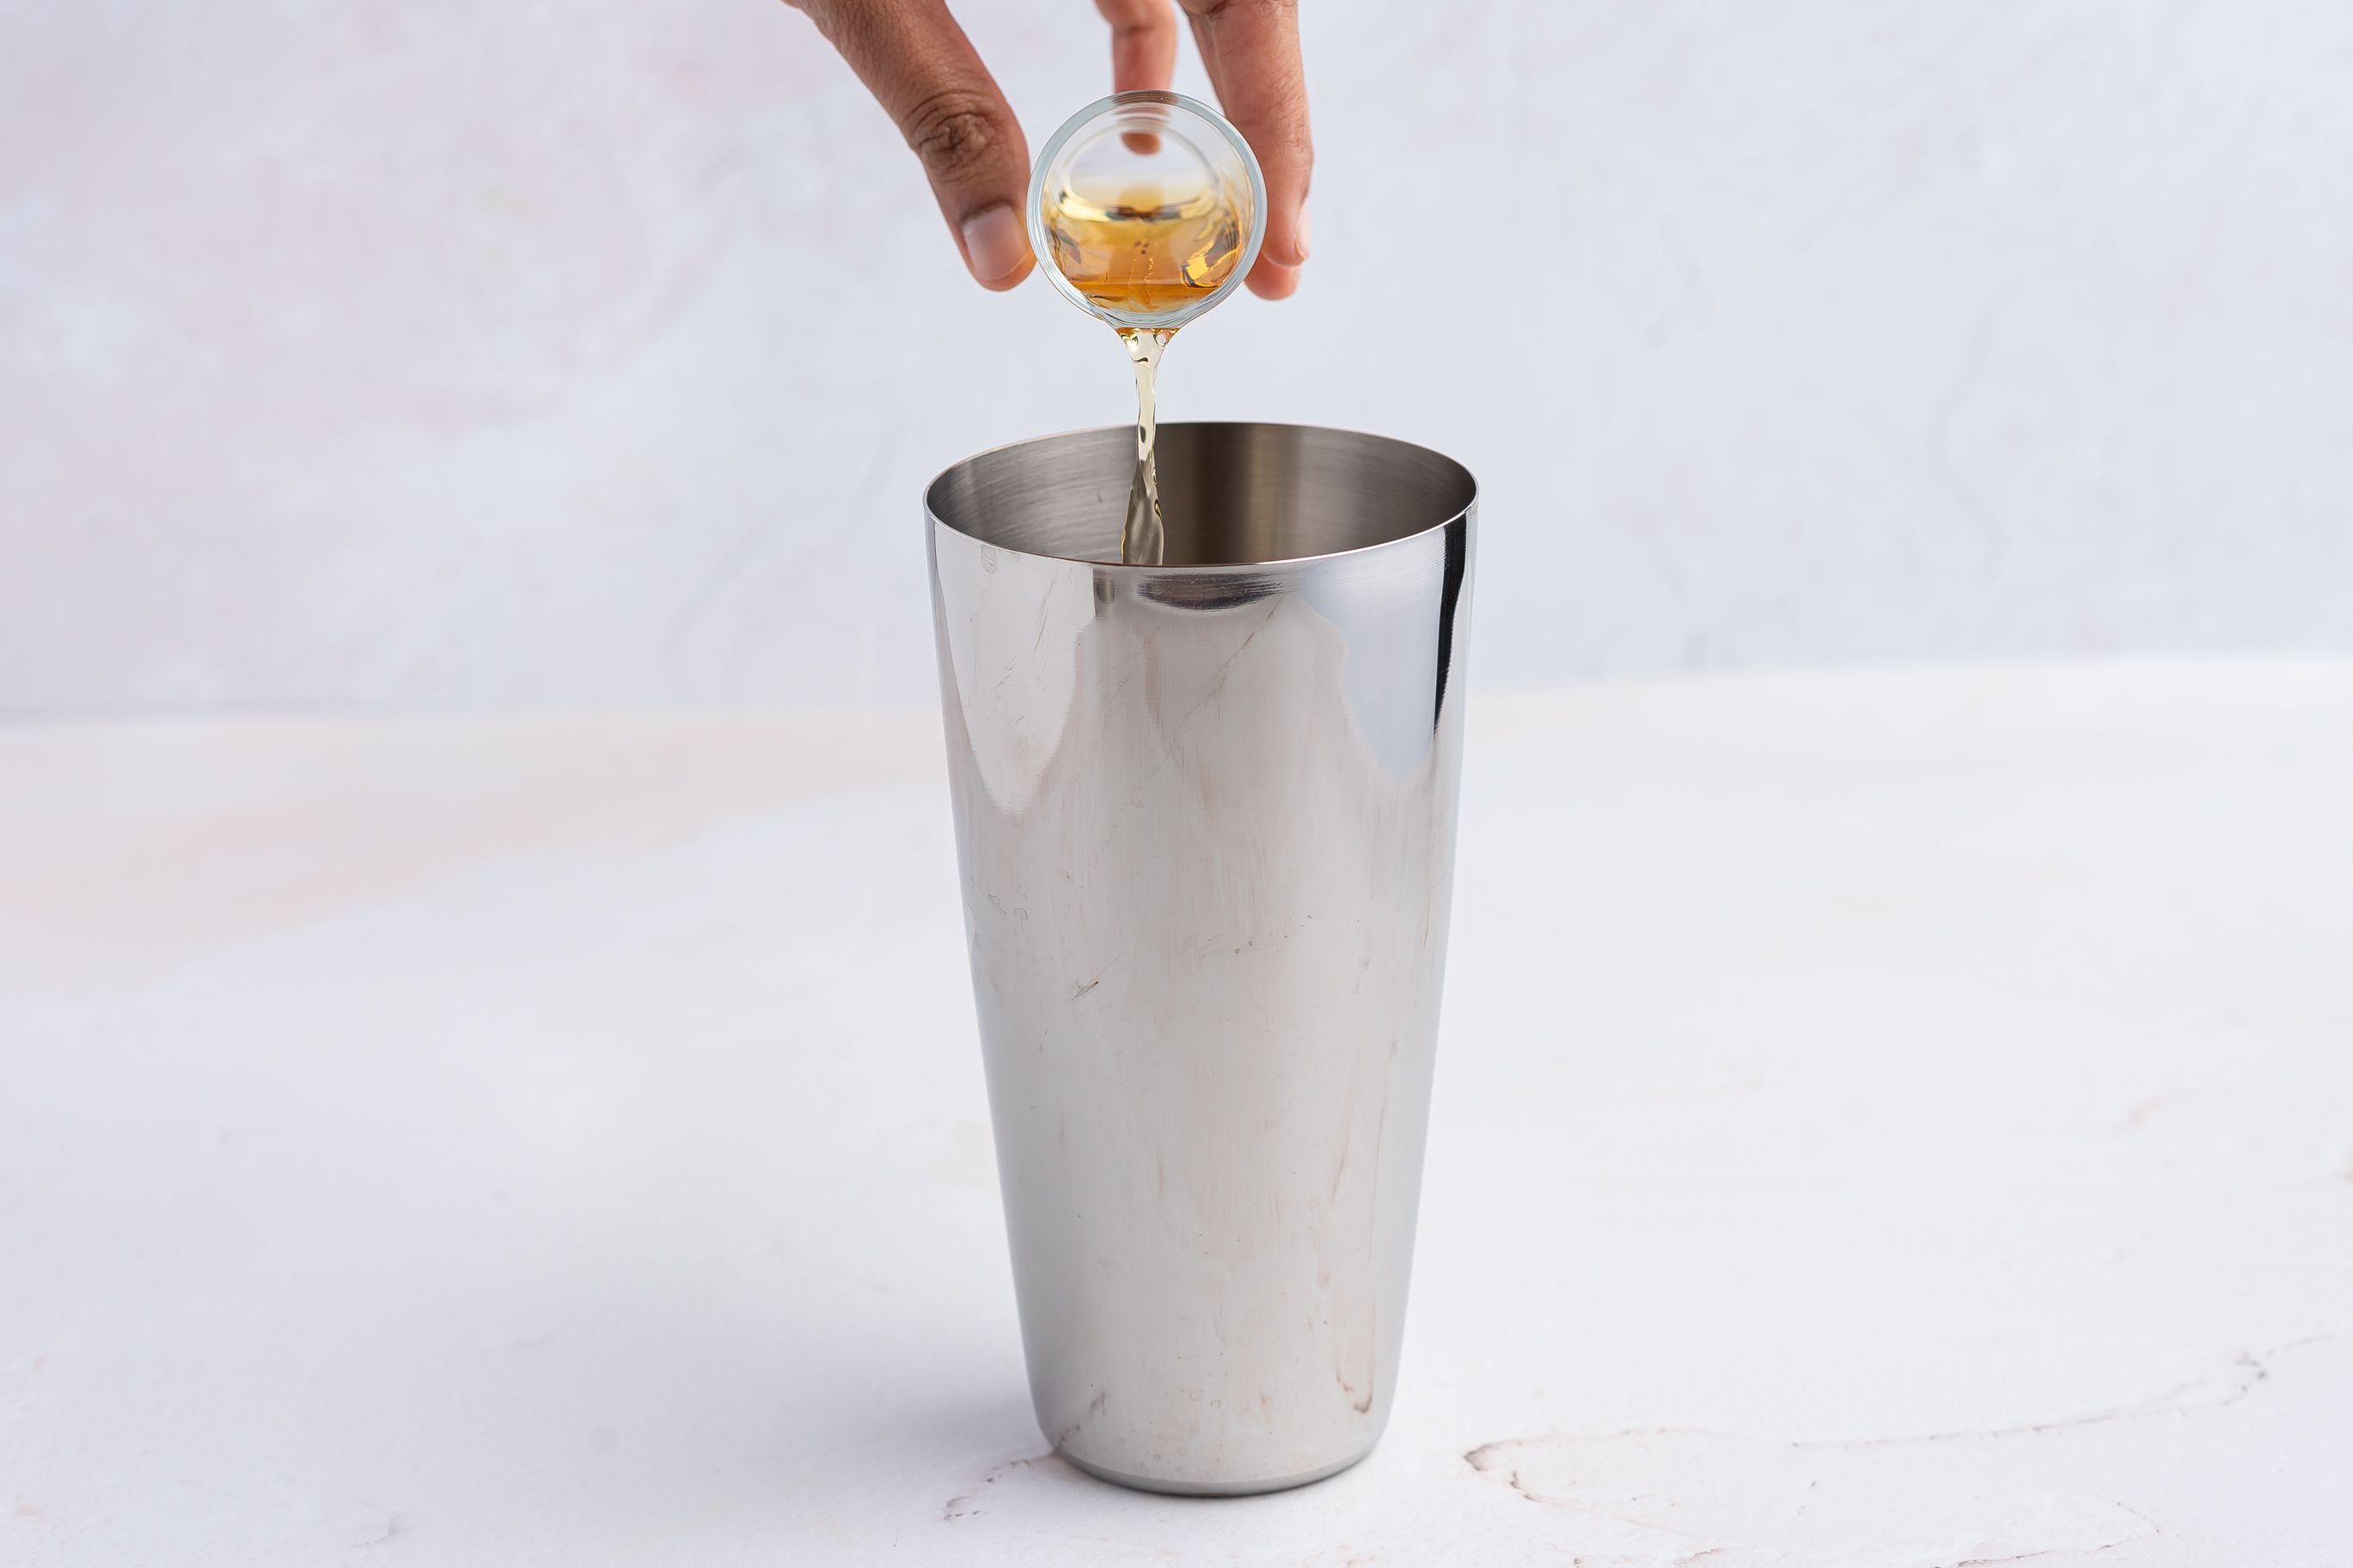 Whiskey, triple sec, sugar, and bitters in a cocktail shaker